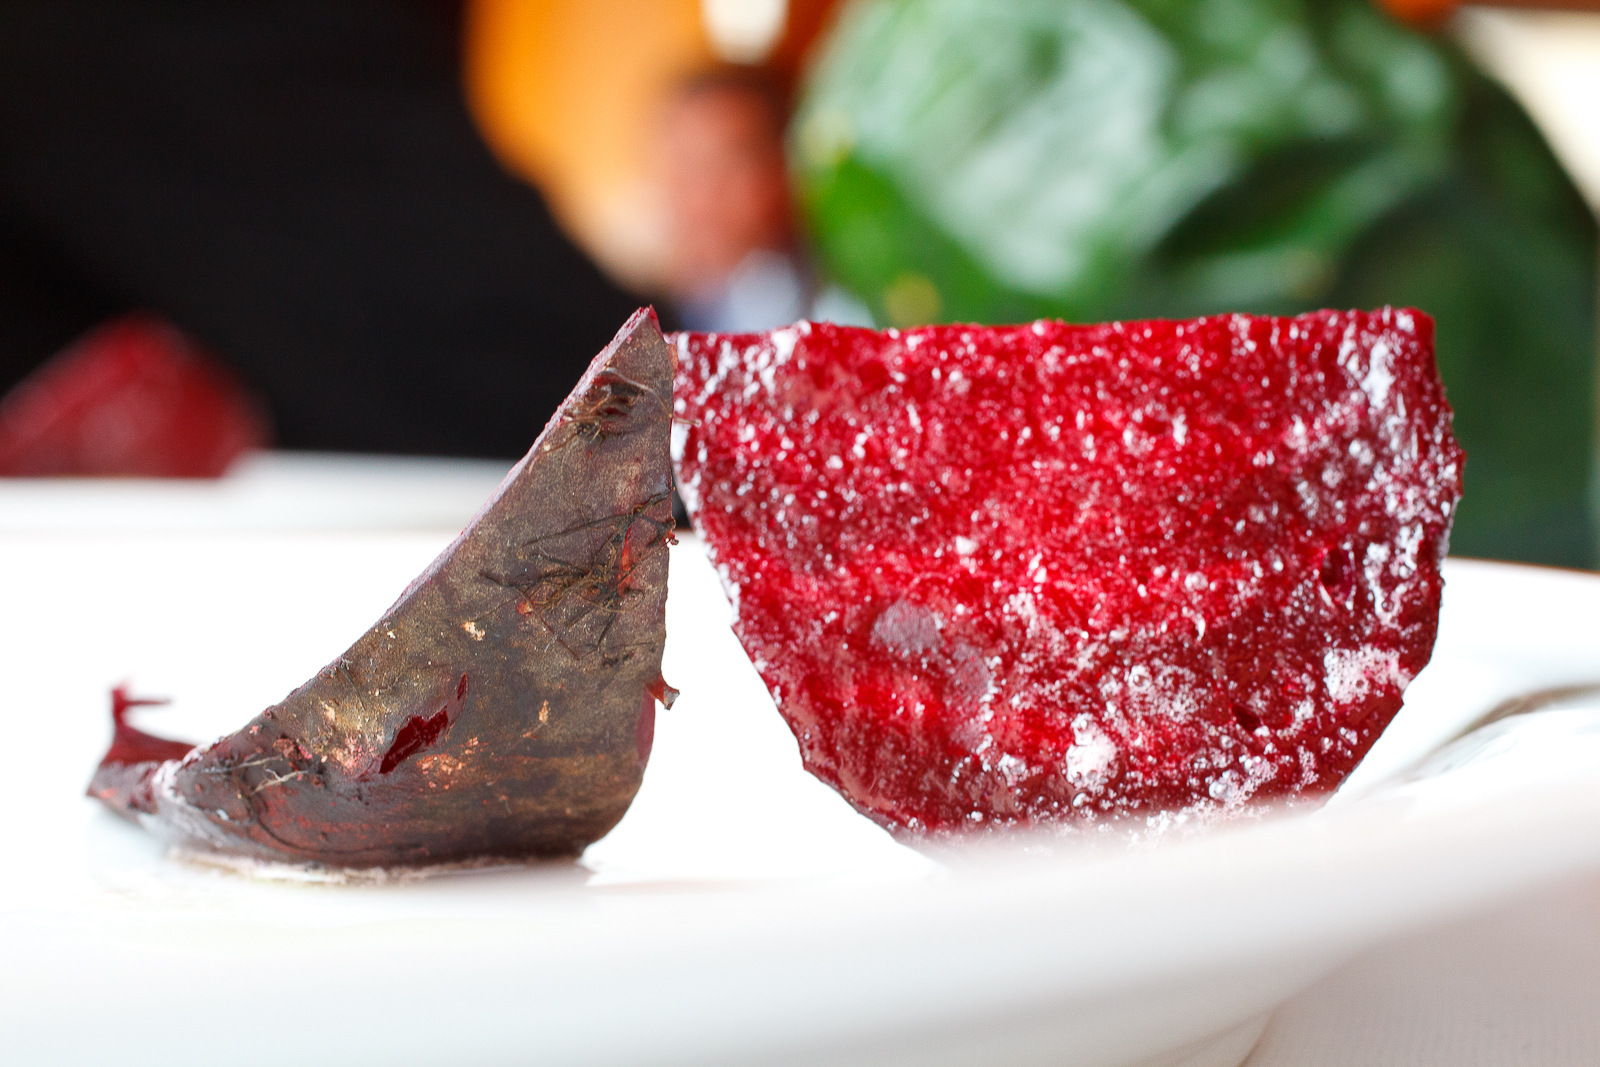 Beet roasted in its skin